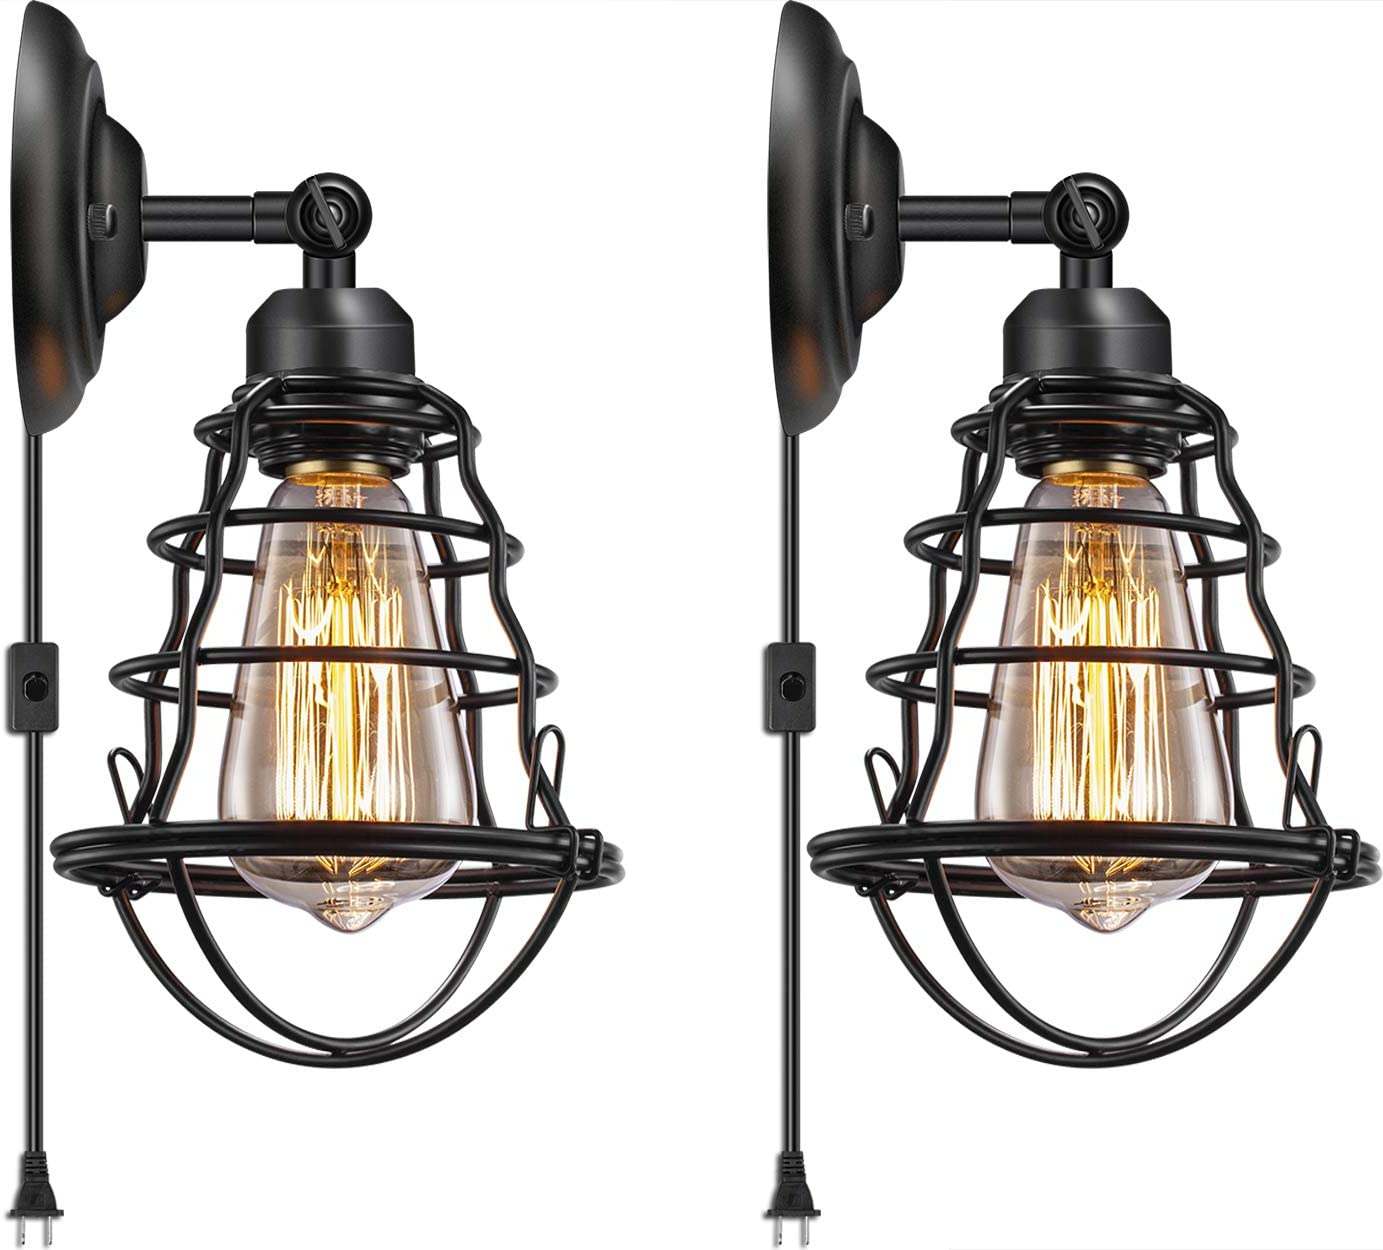 Industrial Plug in Wall Light E26 Base Edison Wire Cage Style Vintage Wall Lights with 5.9Ft Adjustable Plug in Cord Rustic Wall Sconce Fixture for Headboard Bedroom Porch Bathroom 2 Pack - -